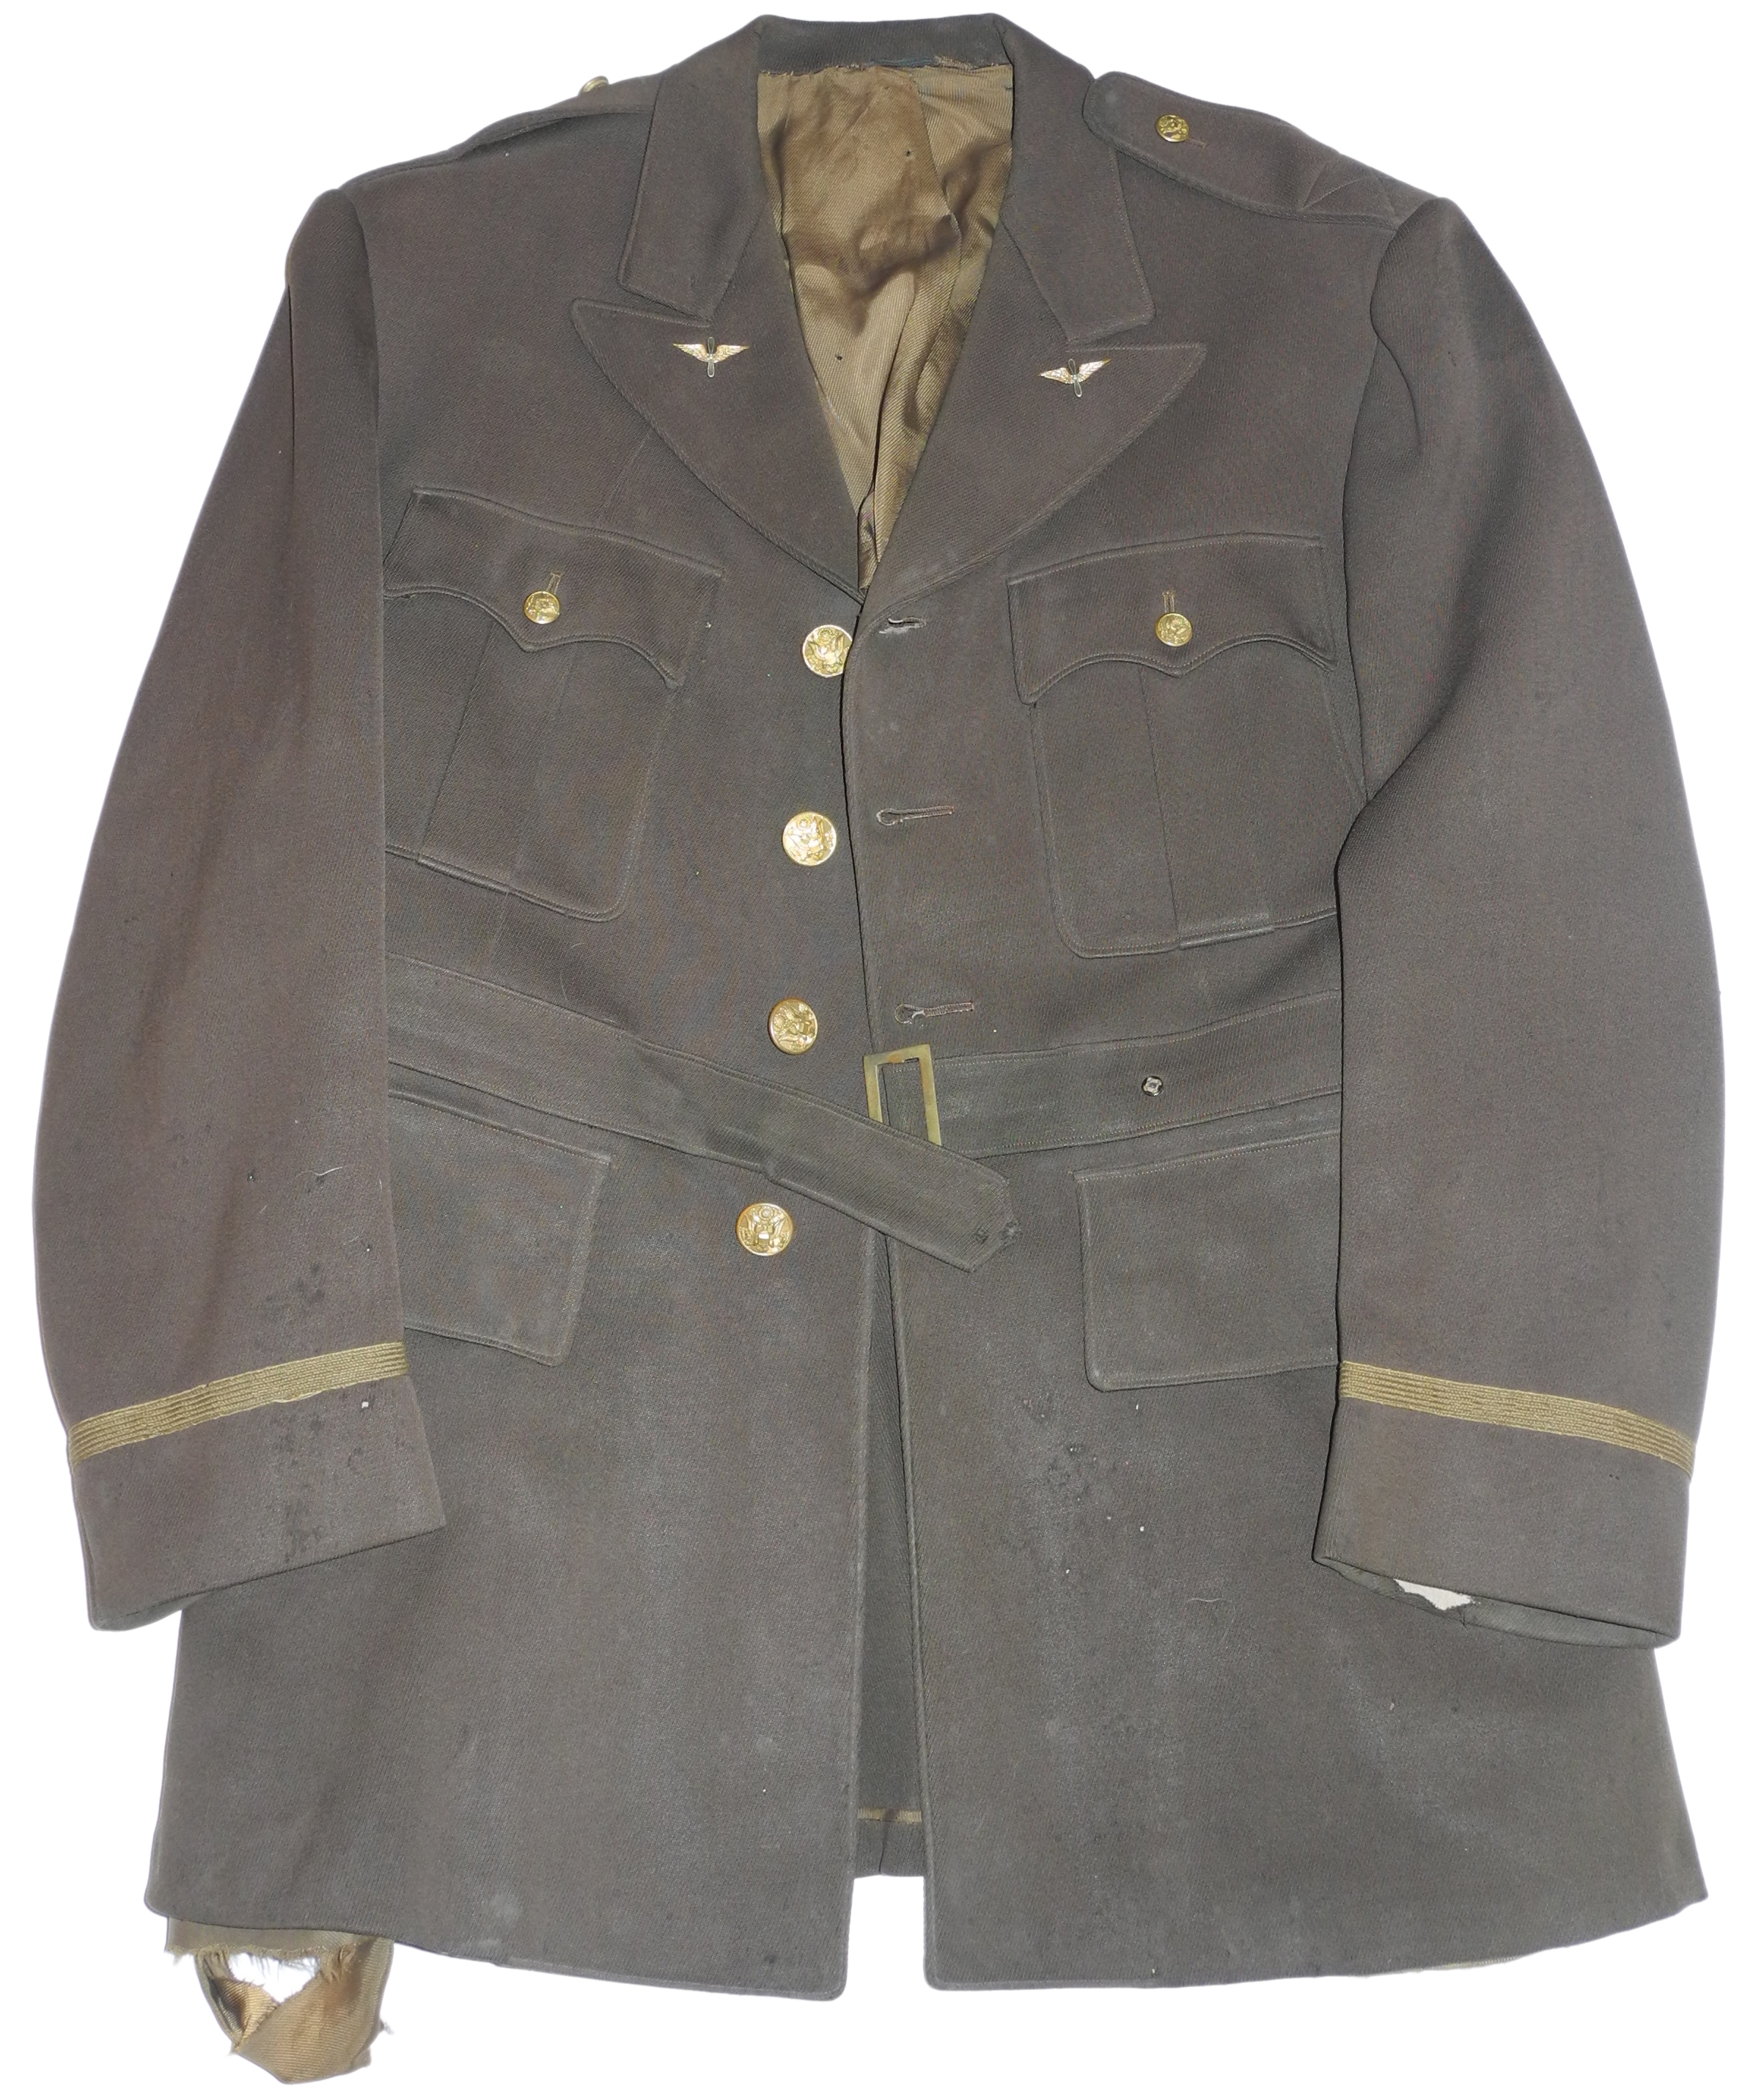 Army Air Corps officer's 1930s uniform